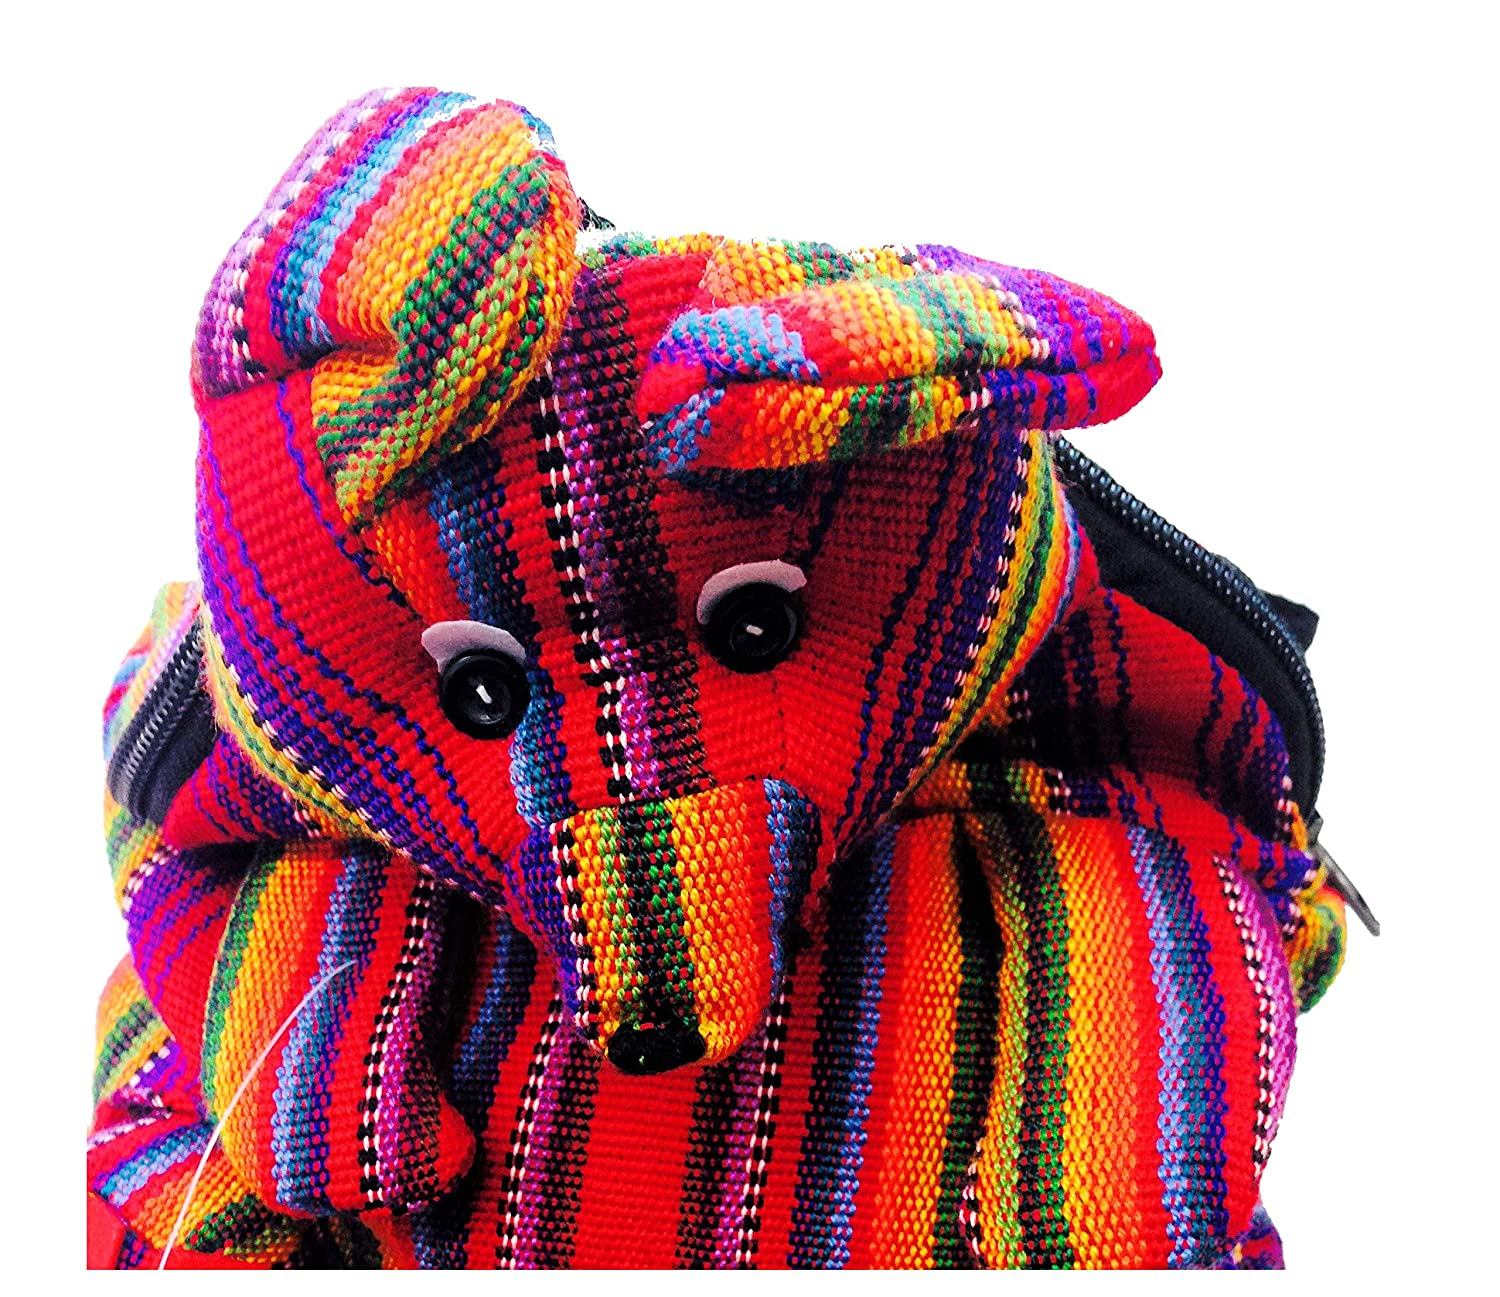 FAIRTRADE HIPPY MULTICOLOURED GUATEMALAN ANIMAL BAG PURSE travel backpack m33